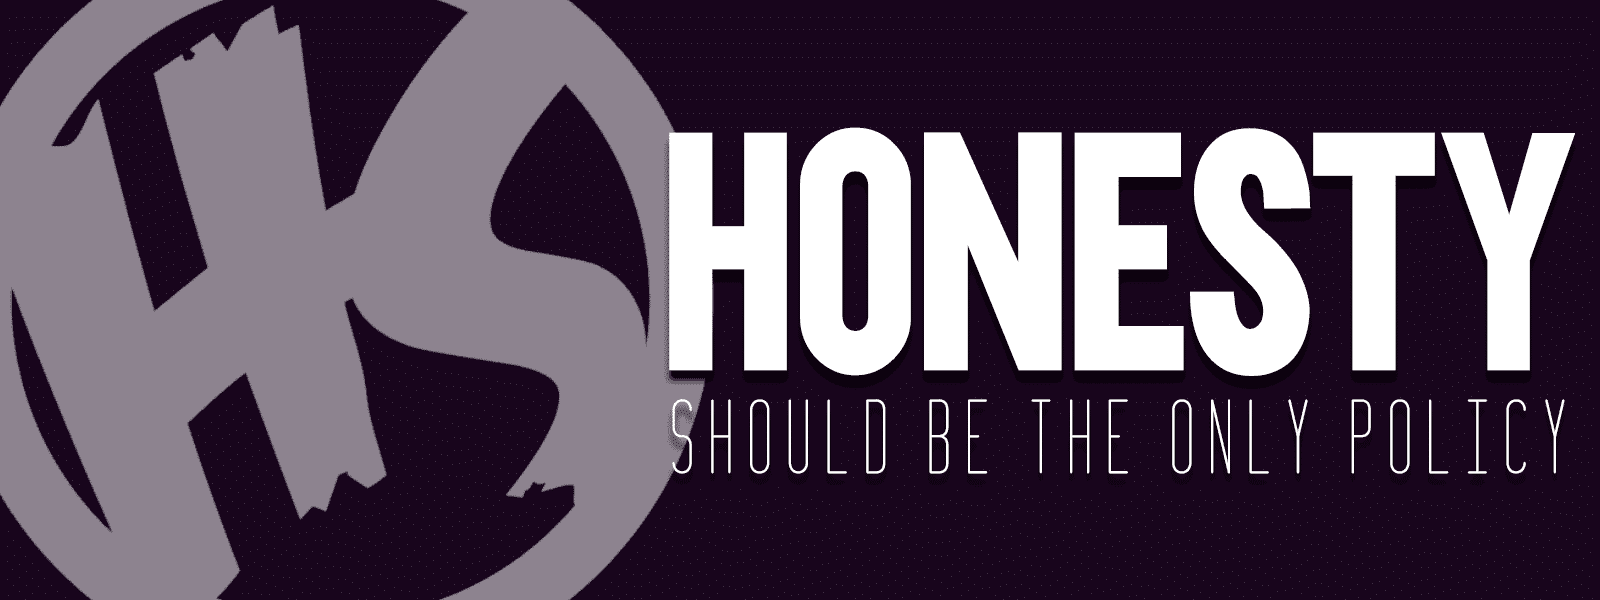 Honesty Should Be The Only Policy Featured Image